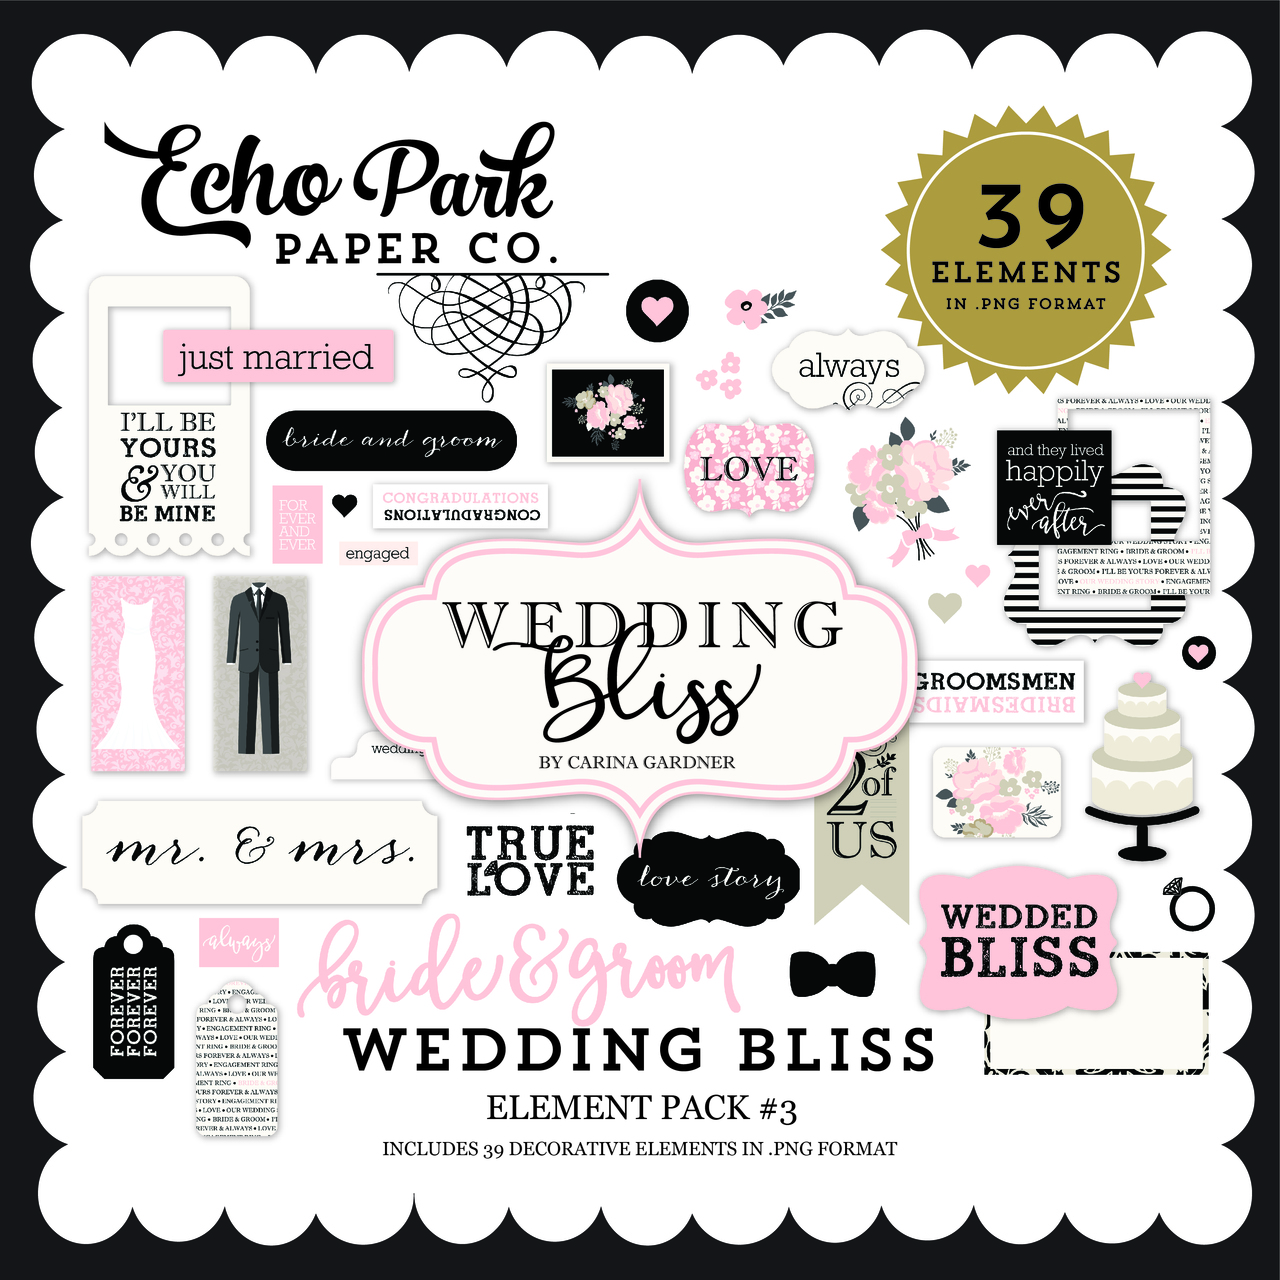 Wedding Bliss Element Pack #3